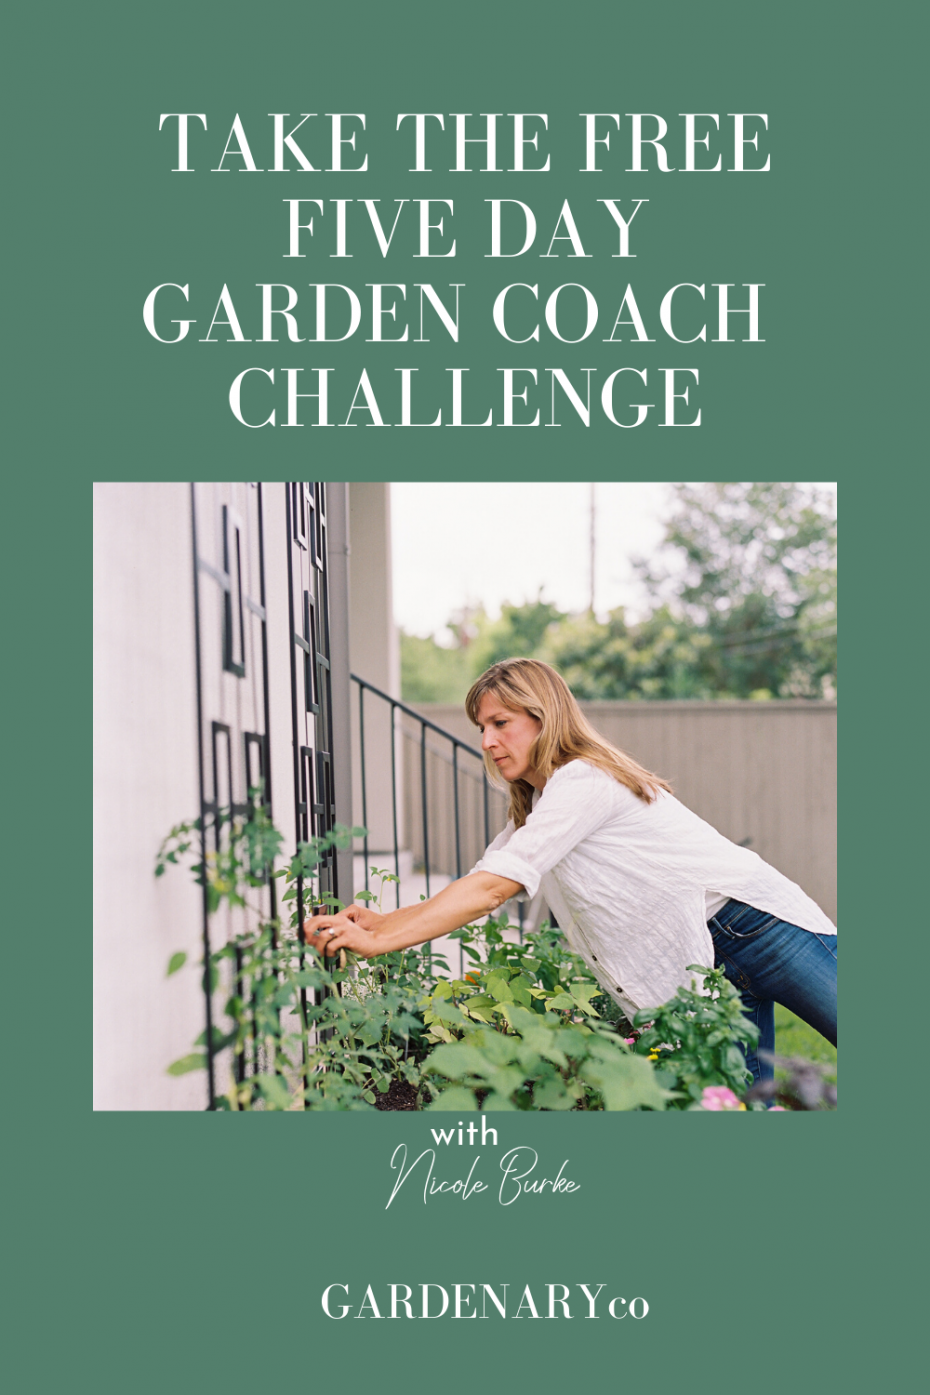 Free Garden Coach Challenge to learn how to create your own garden coach business